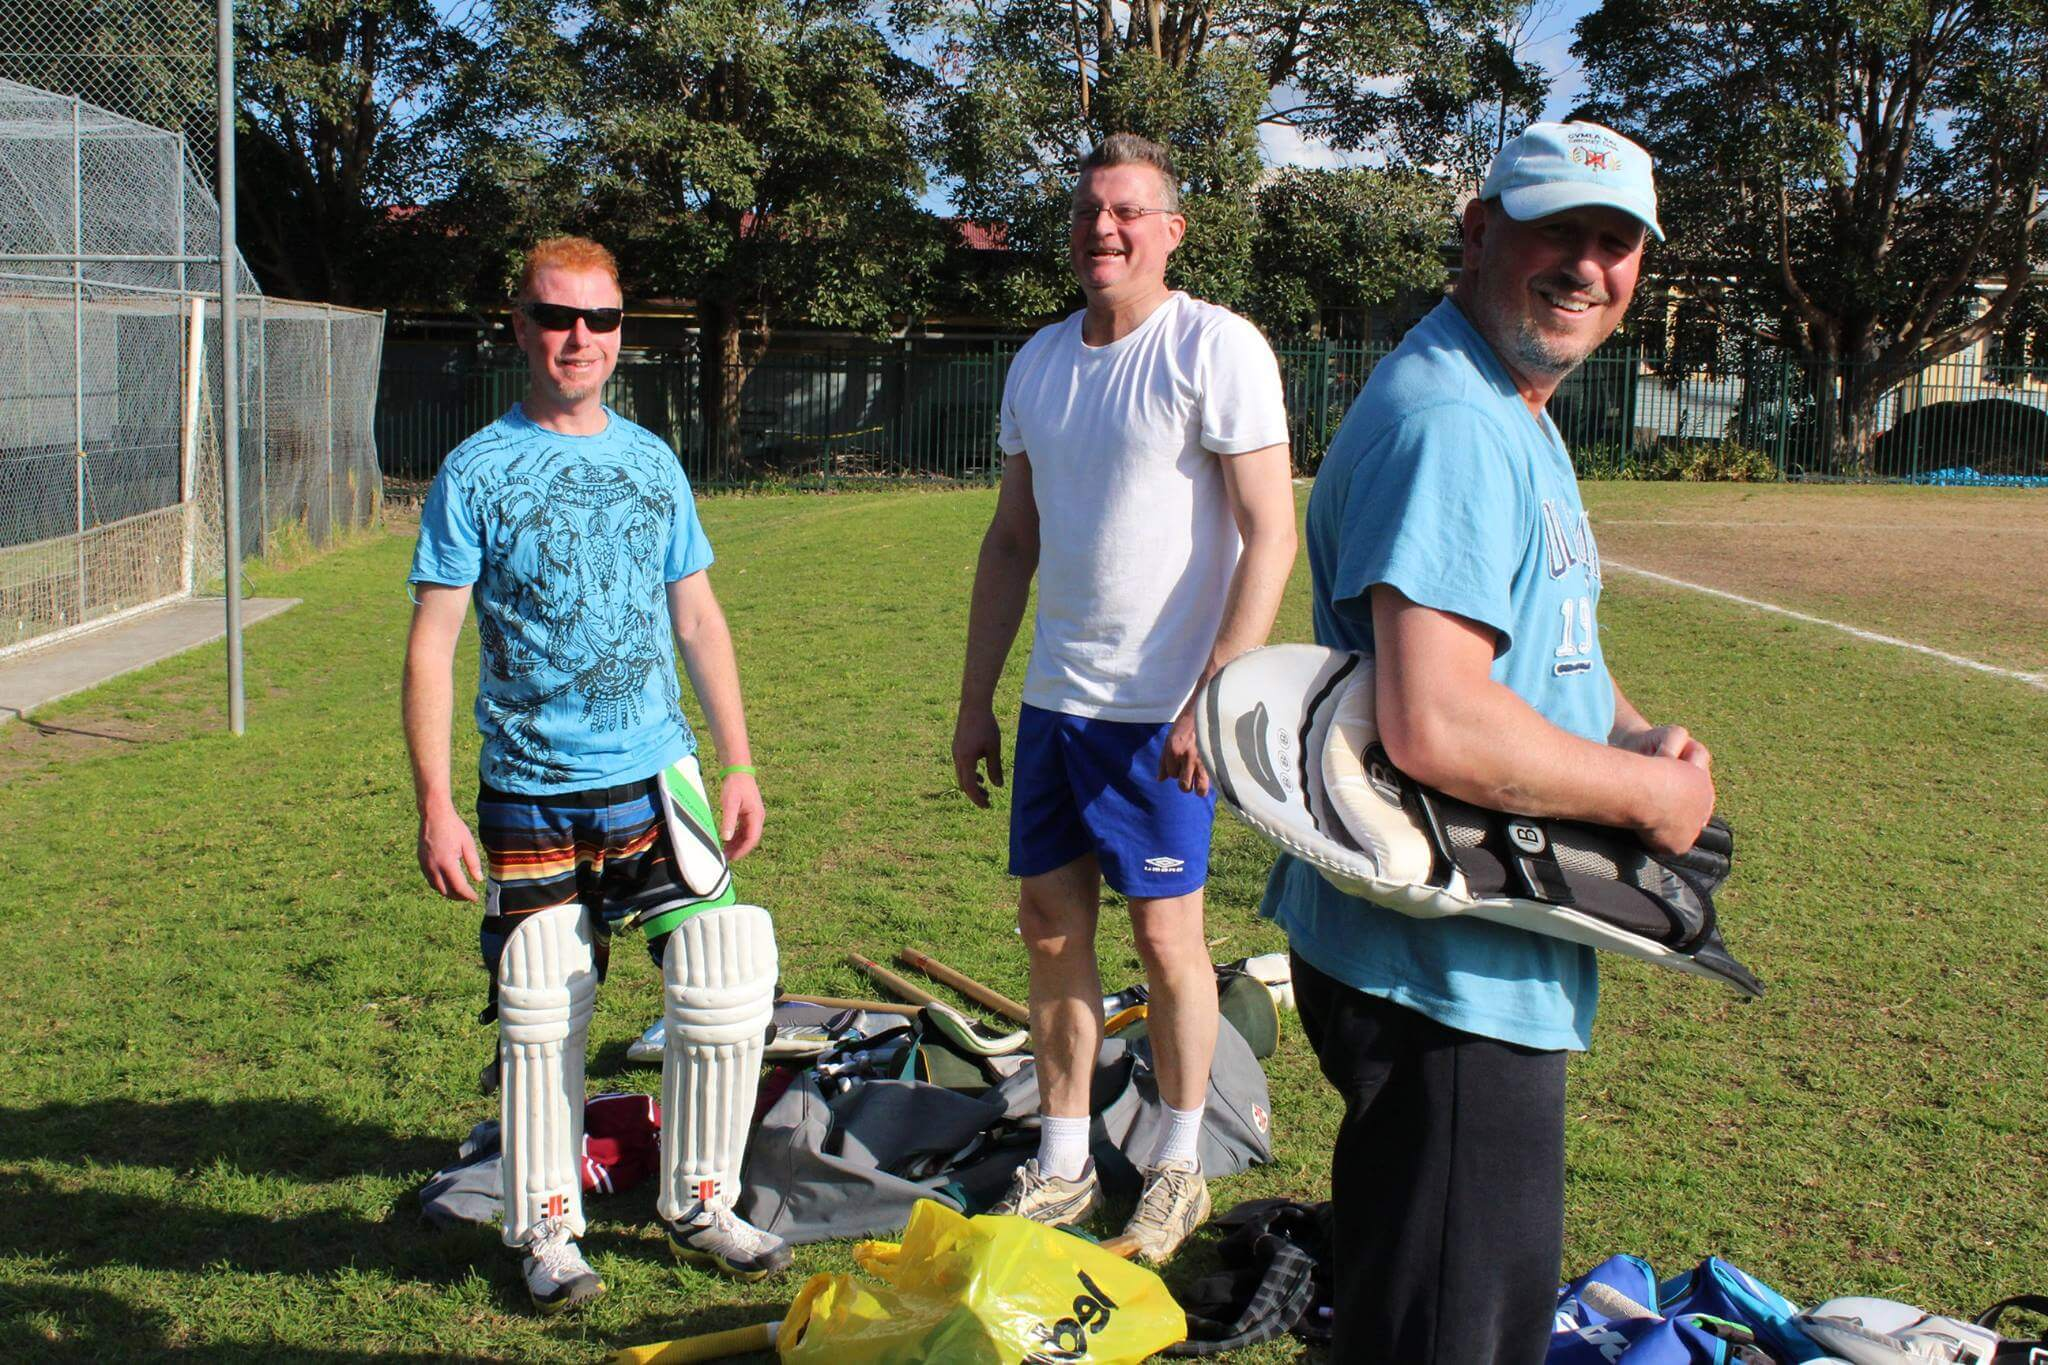 A photo of senior cricket players pre-game.